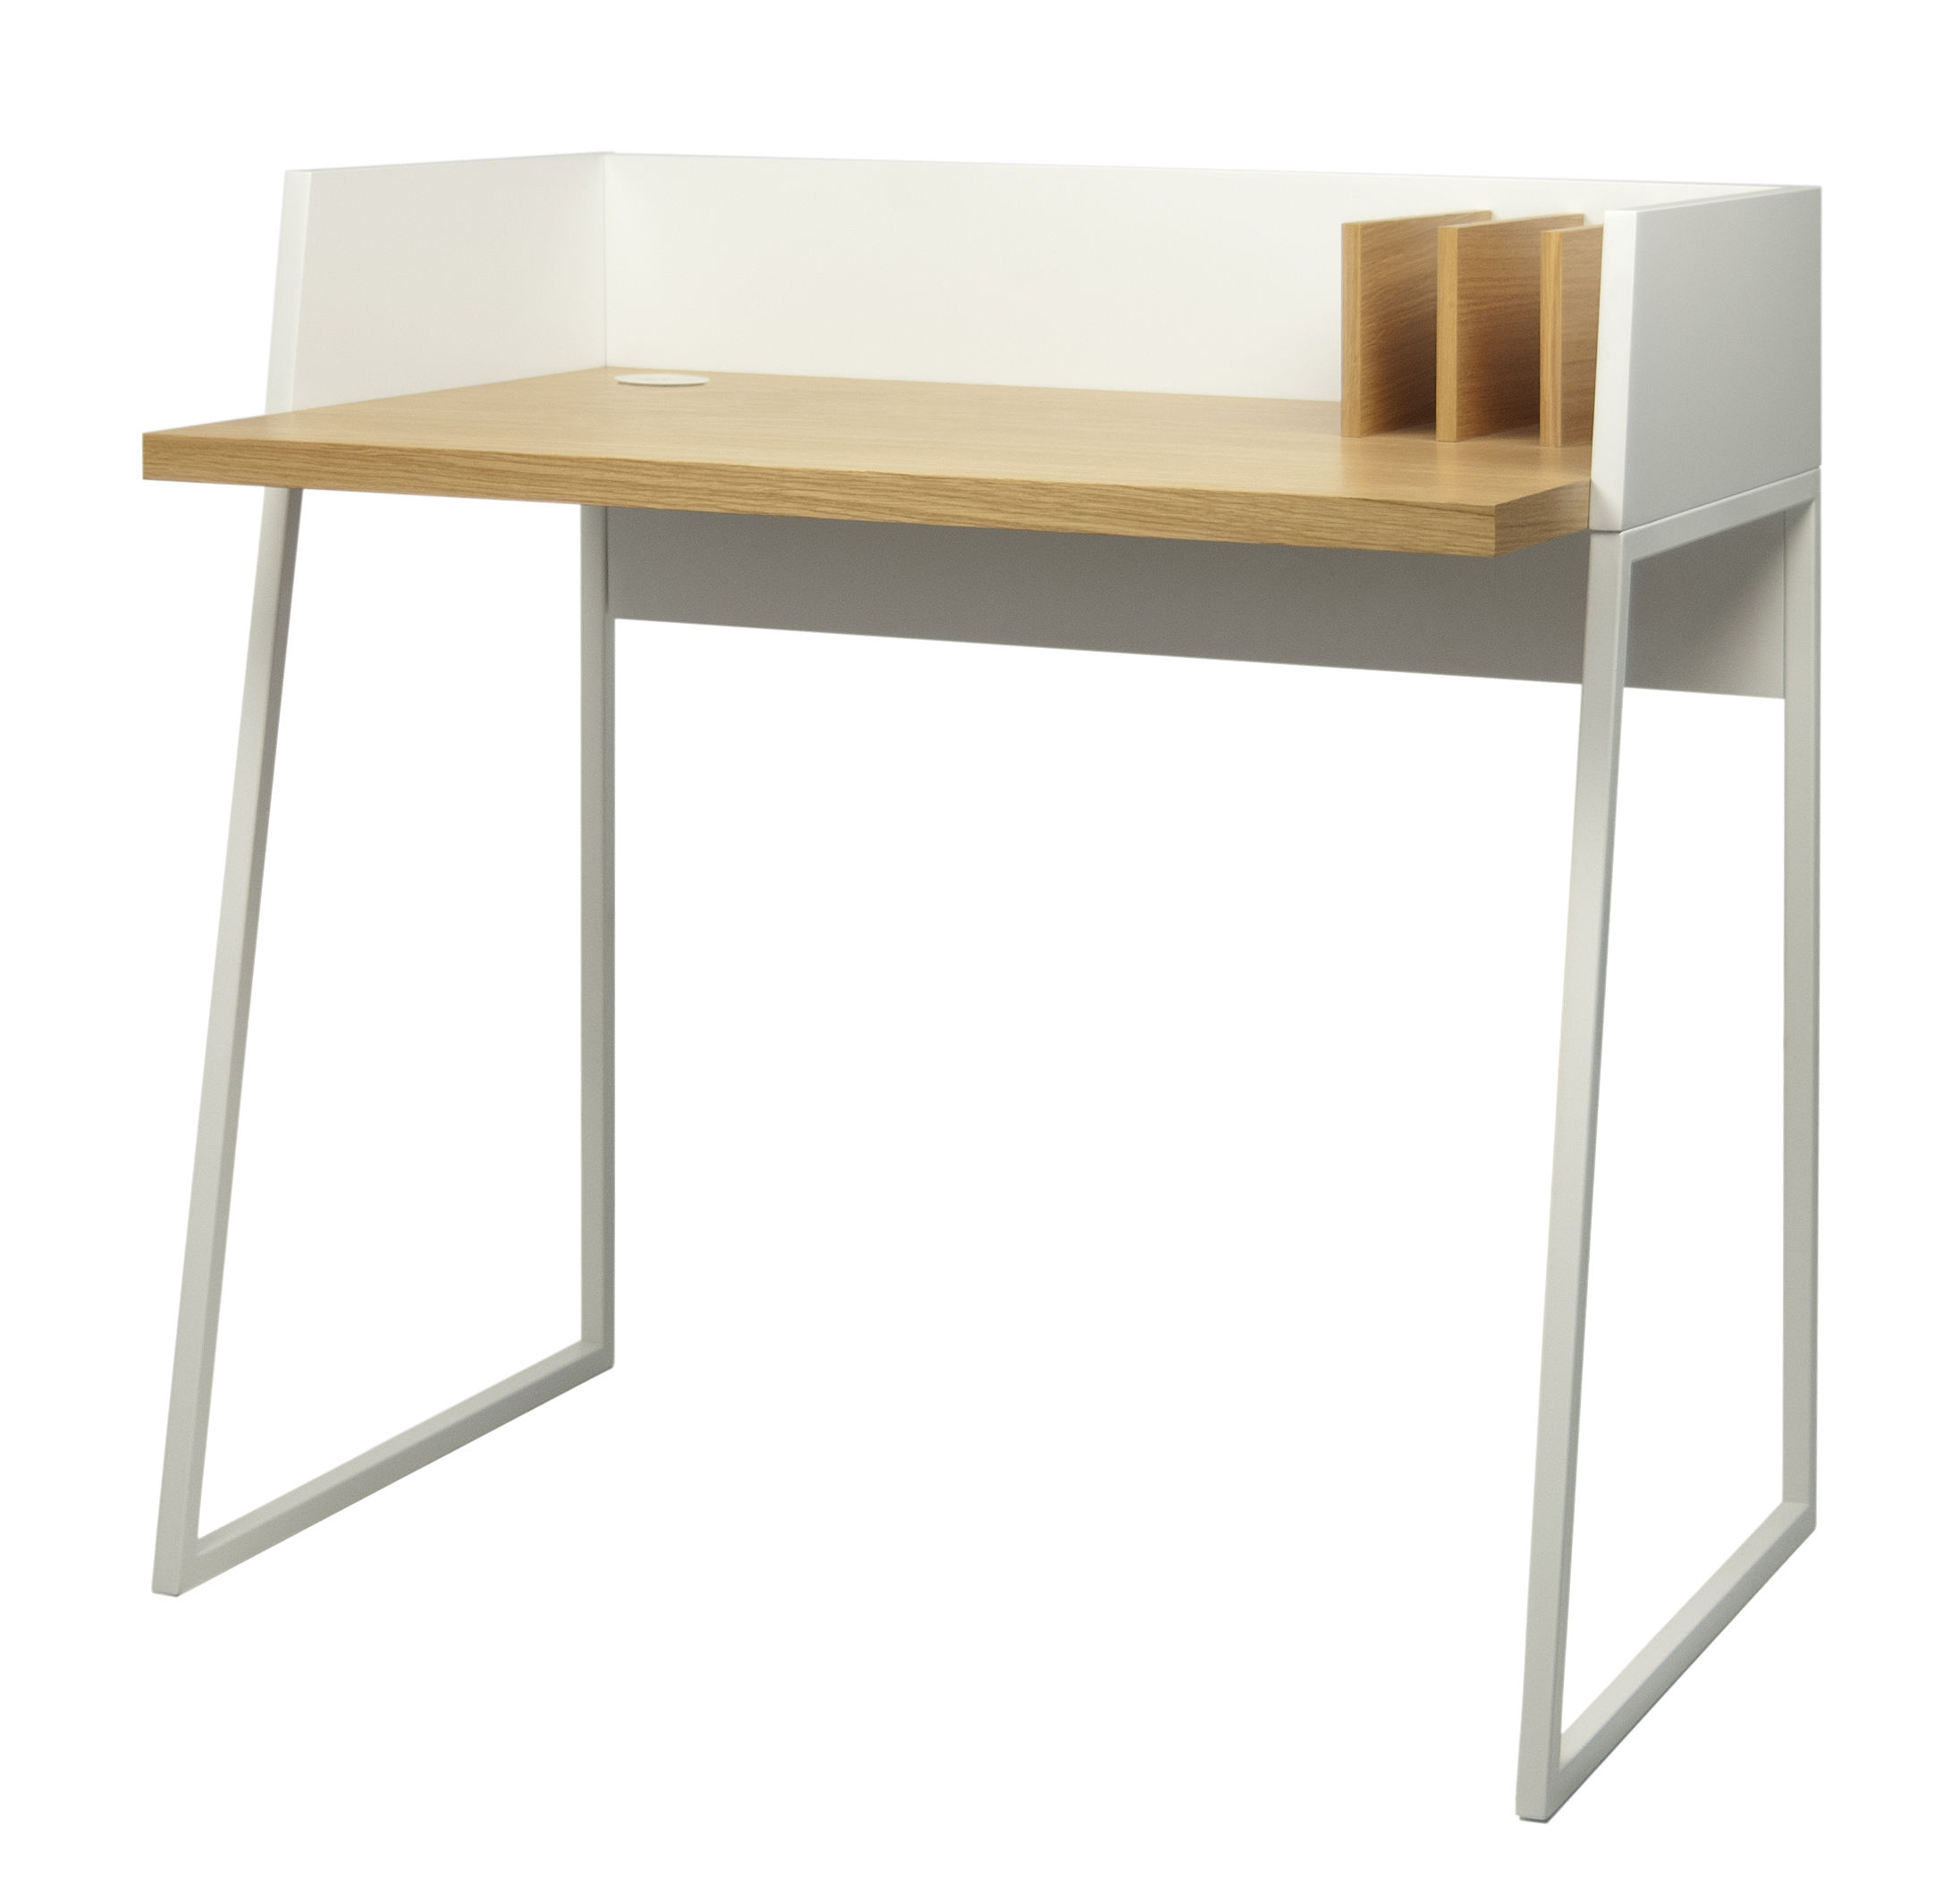 POP UP HOME Working Desk - White/Natural Wood